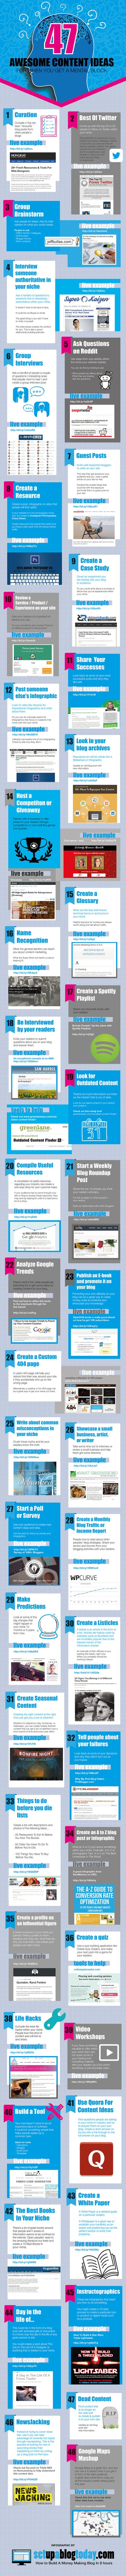 47 great ideas for content